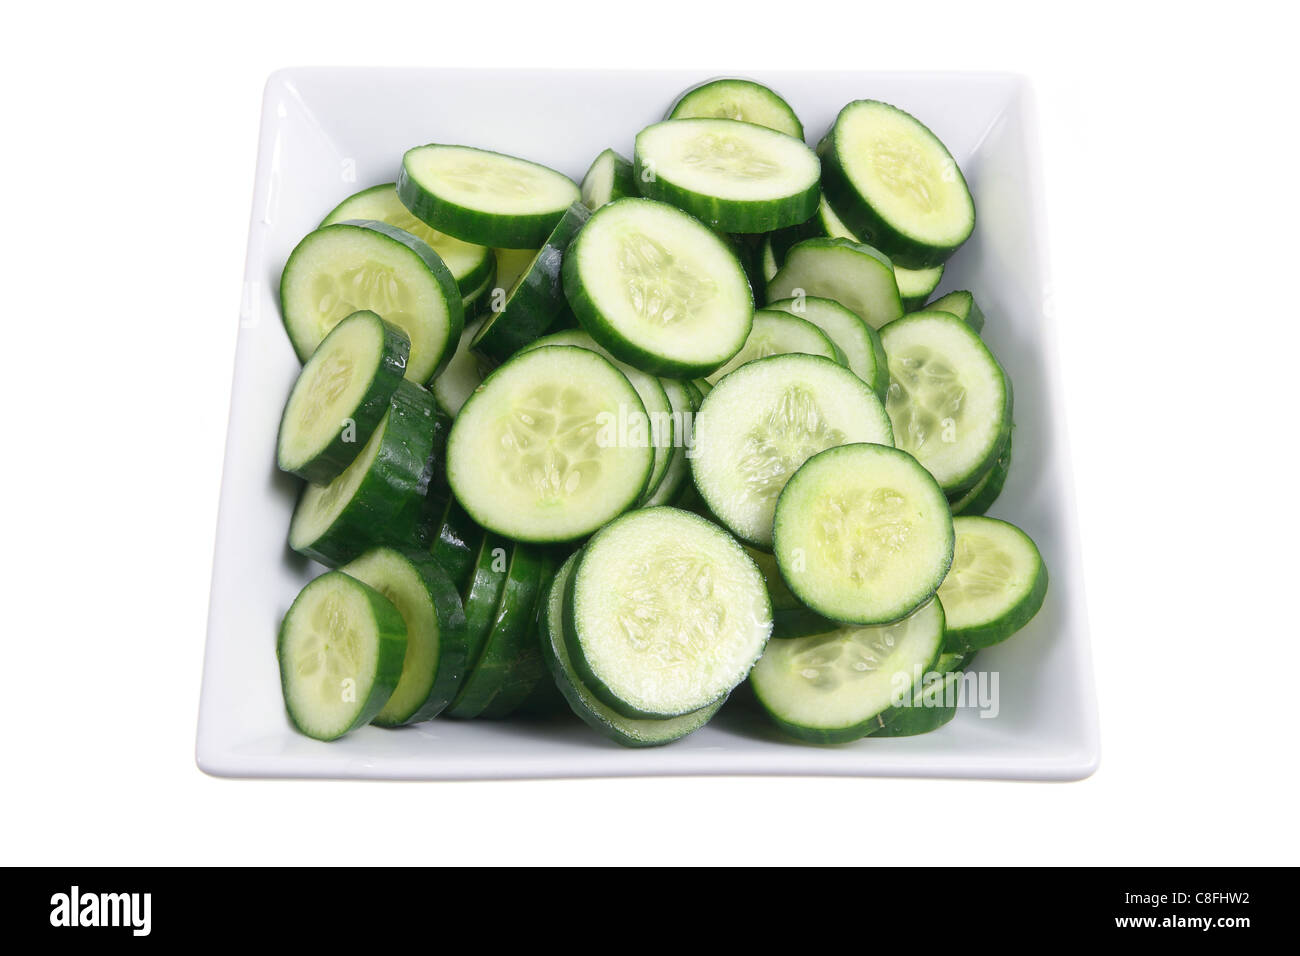 Plate of Lebanese Cucumber Slices - Stock Image